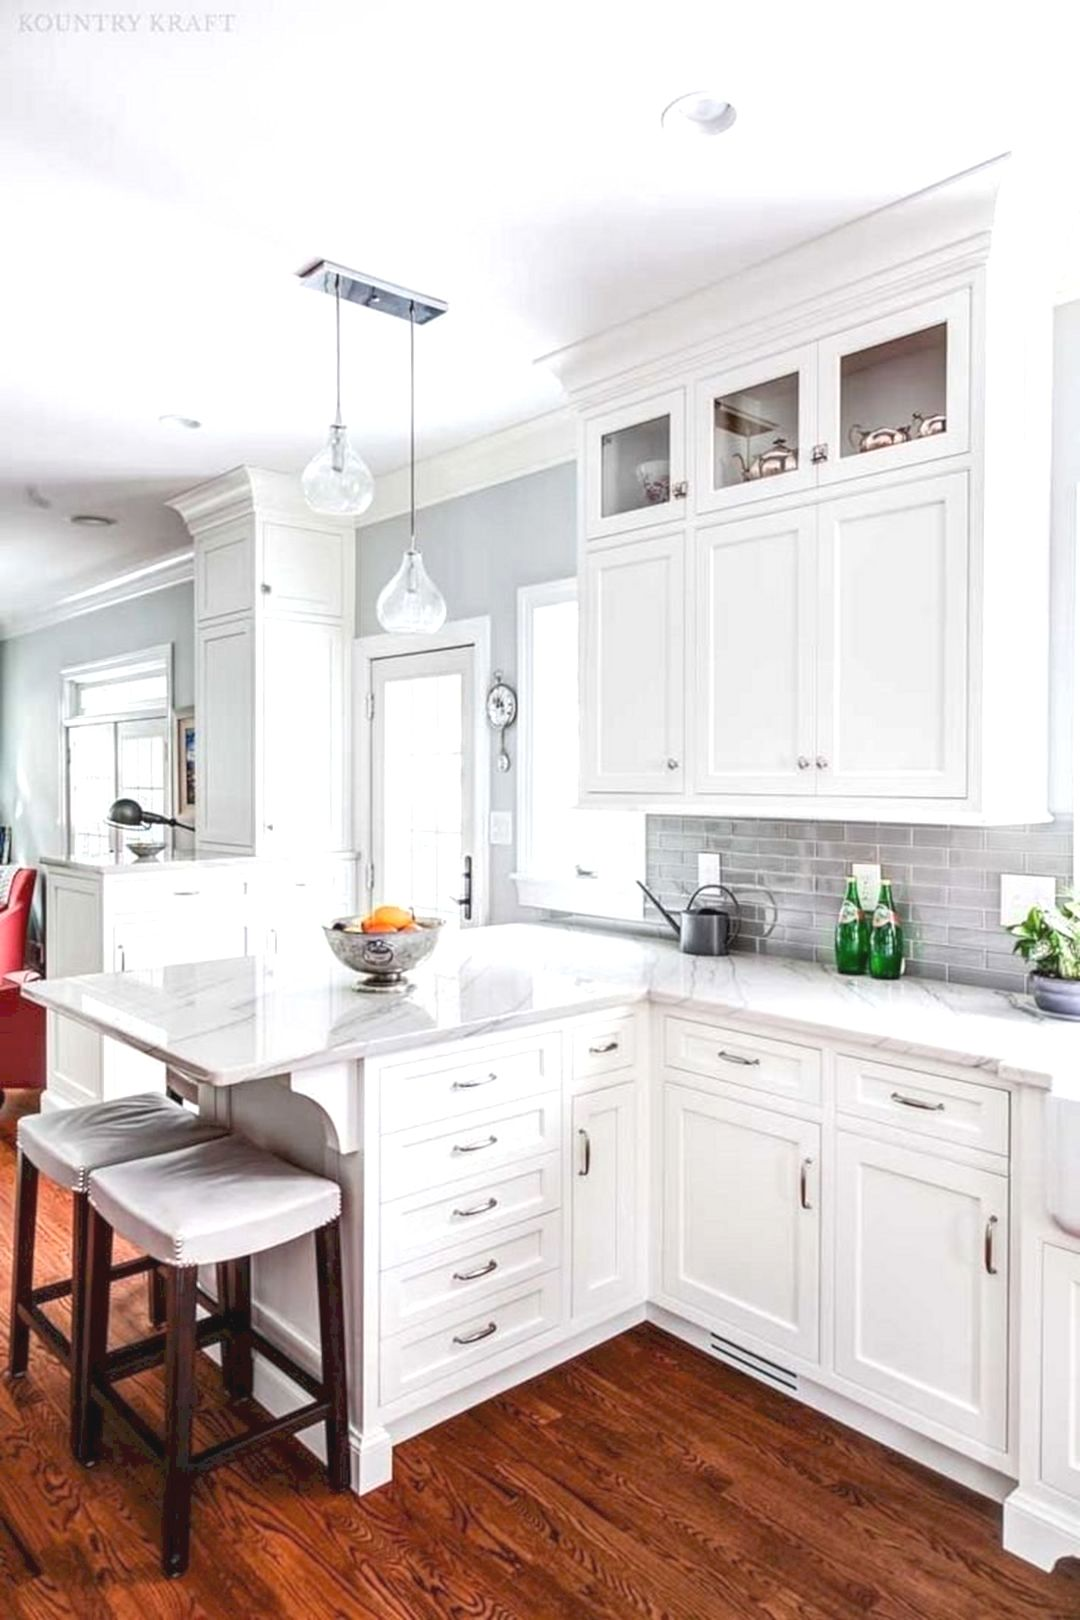 80 elegant kitchen design ideas for your in 2020 kitchen remodel small white kitchen design on kitchen cabinets not white id=45228